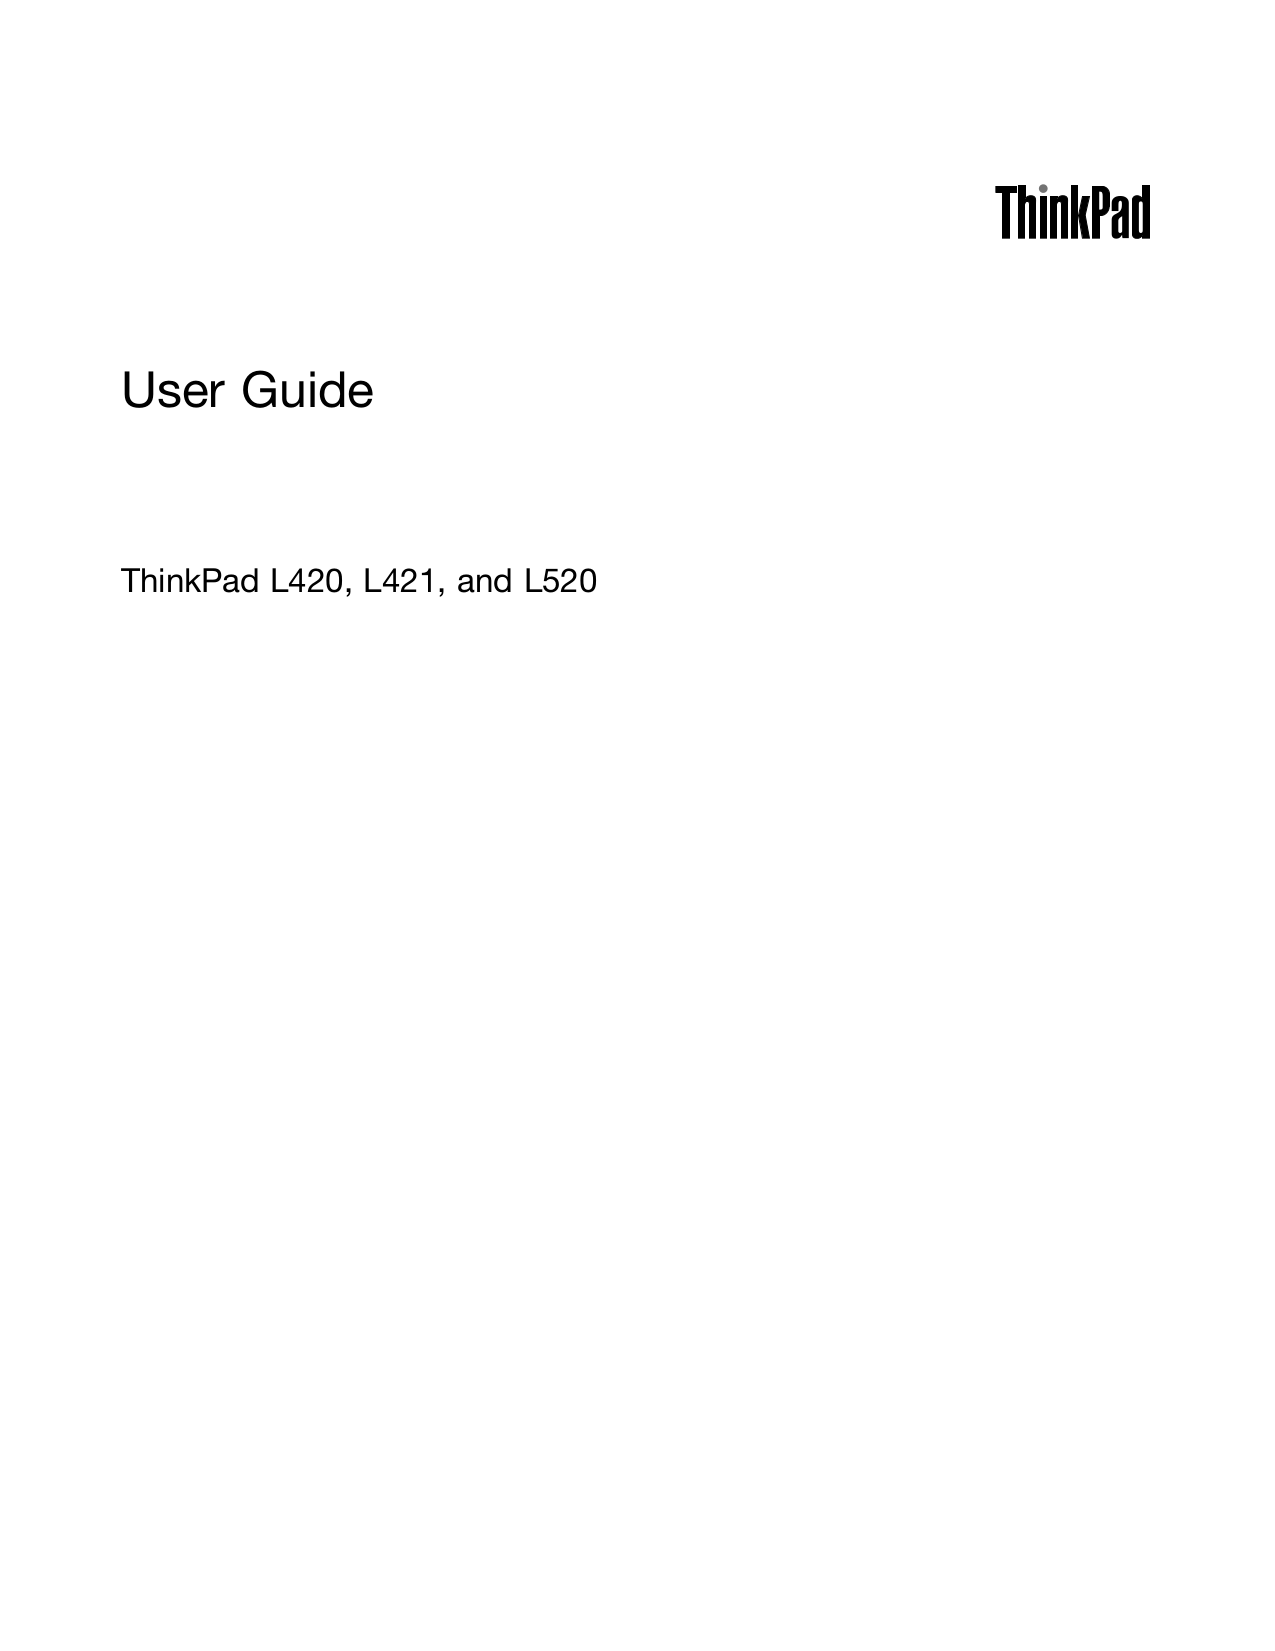 pdf for IBM Laptop ThinkPad 380D manual